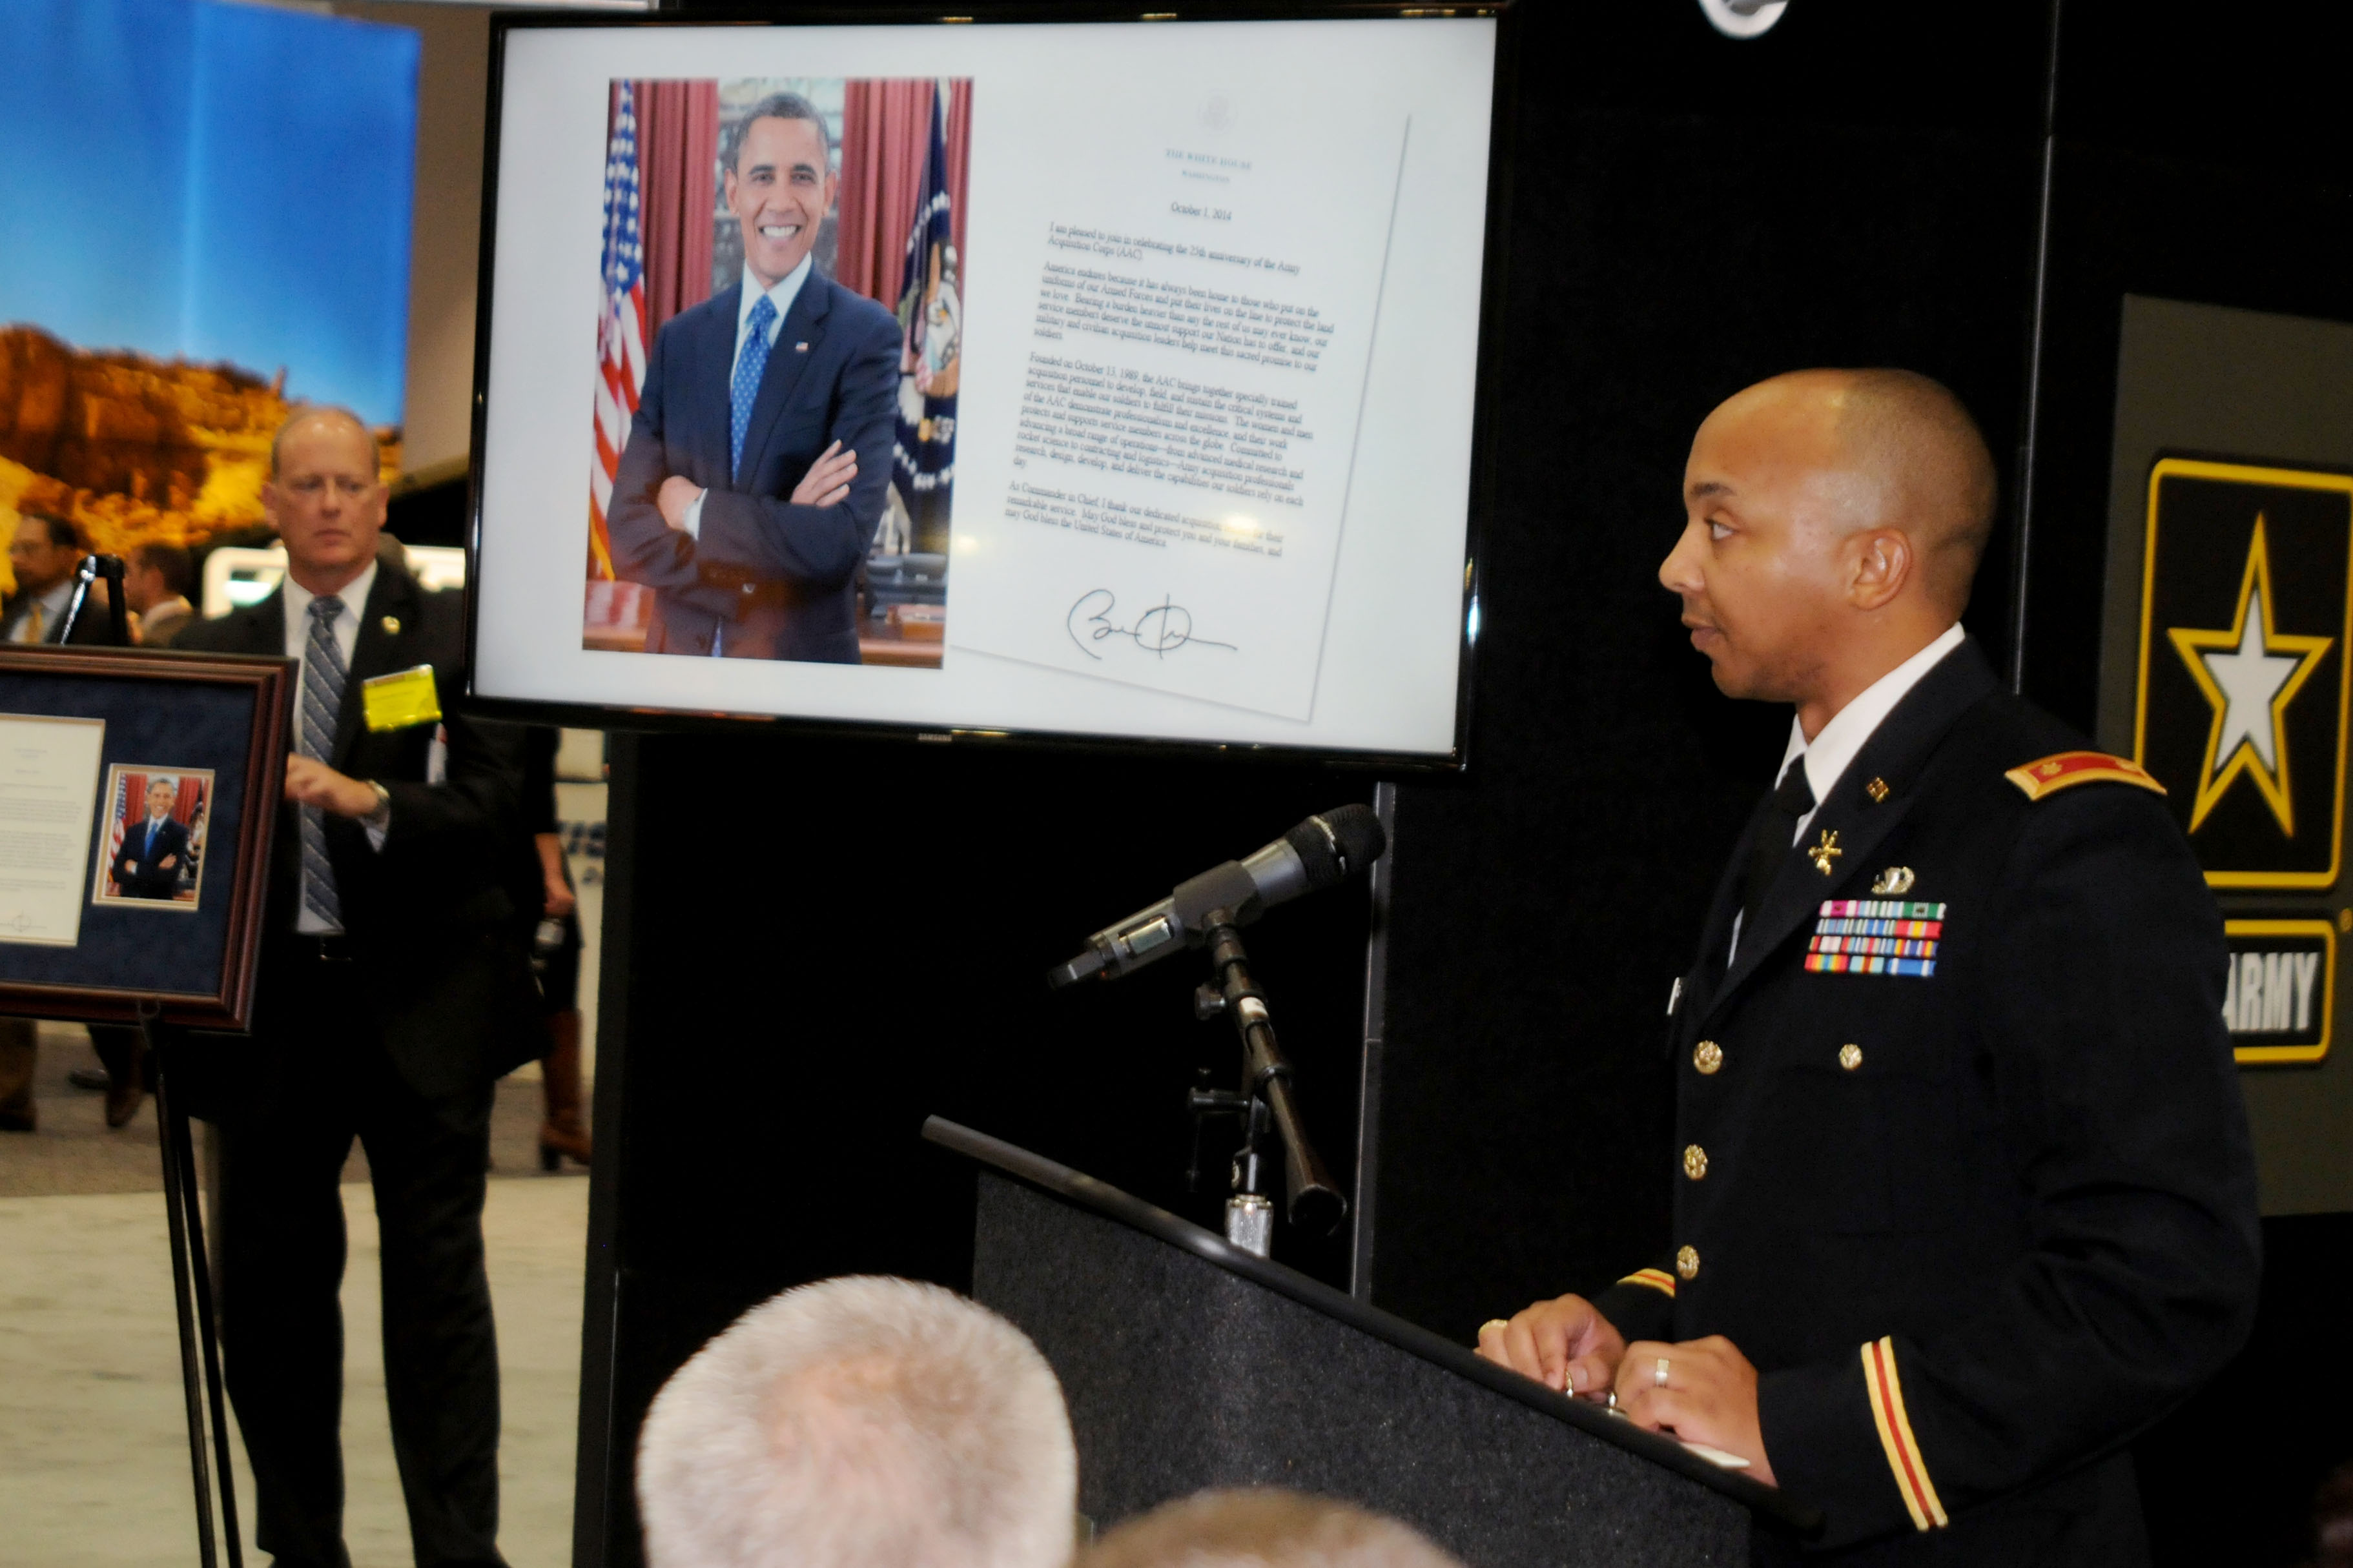 Maj. Isaac Cuthbertson reads President Obama's letter in celebration of the AAC 25th anniversary at the Oct. 13 ceremony at the AUSA annual meeting.